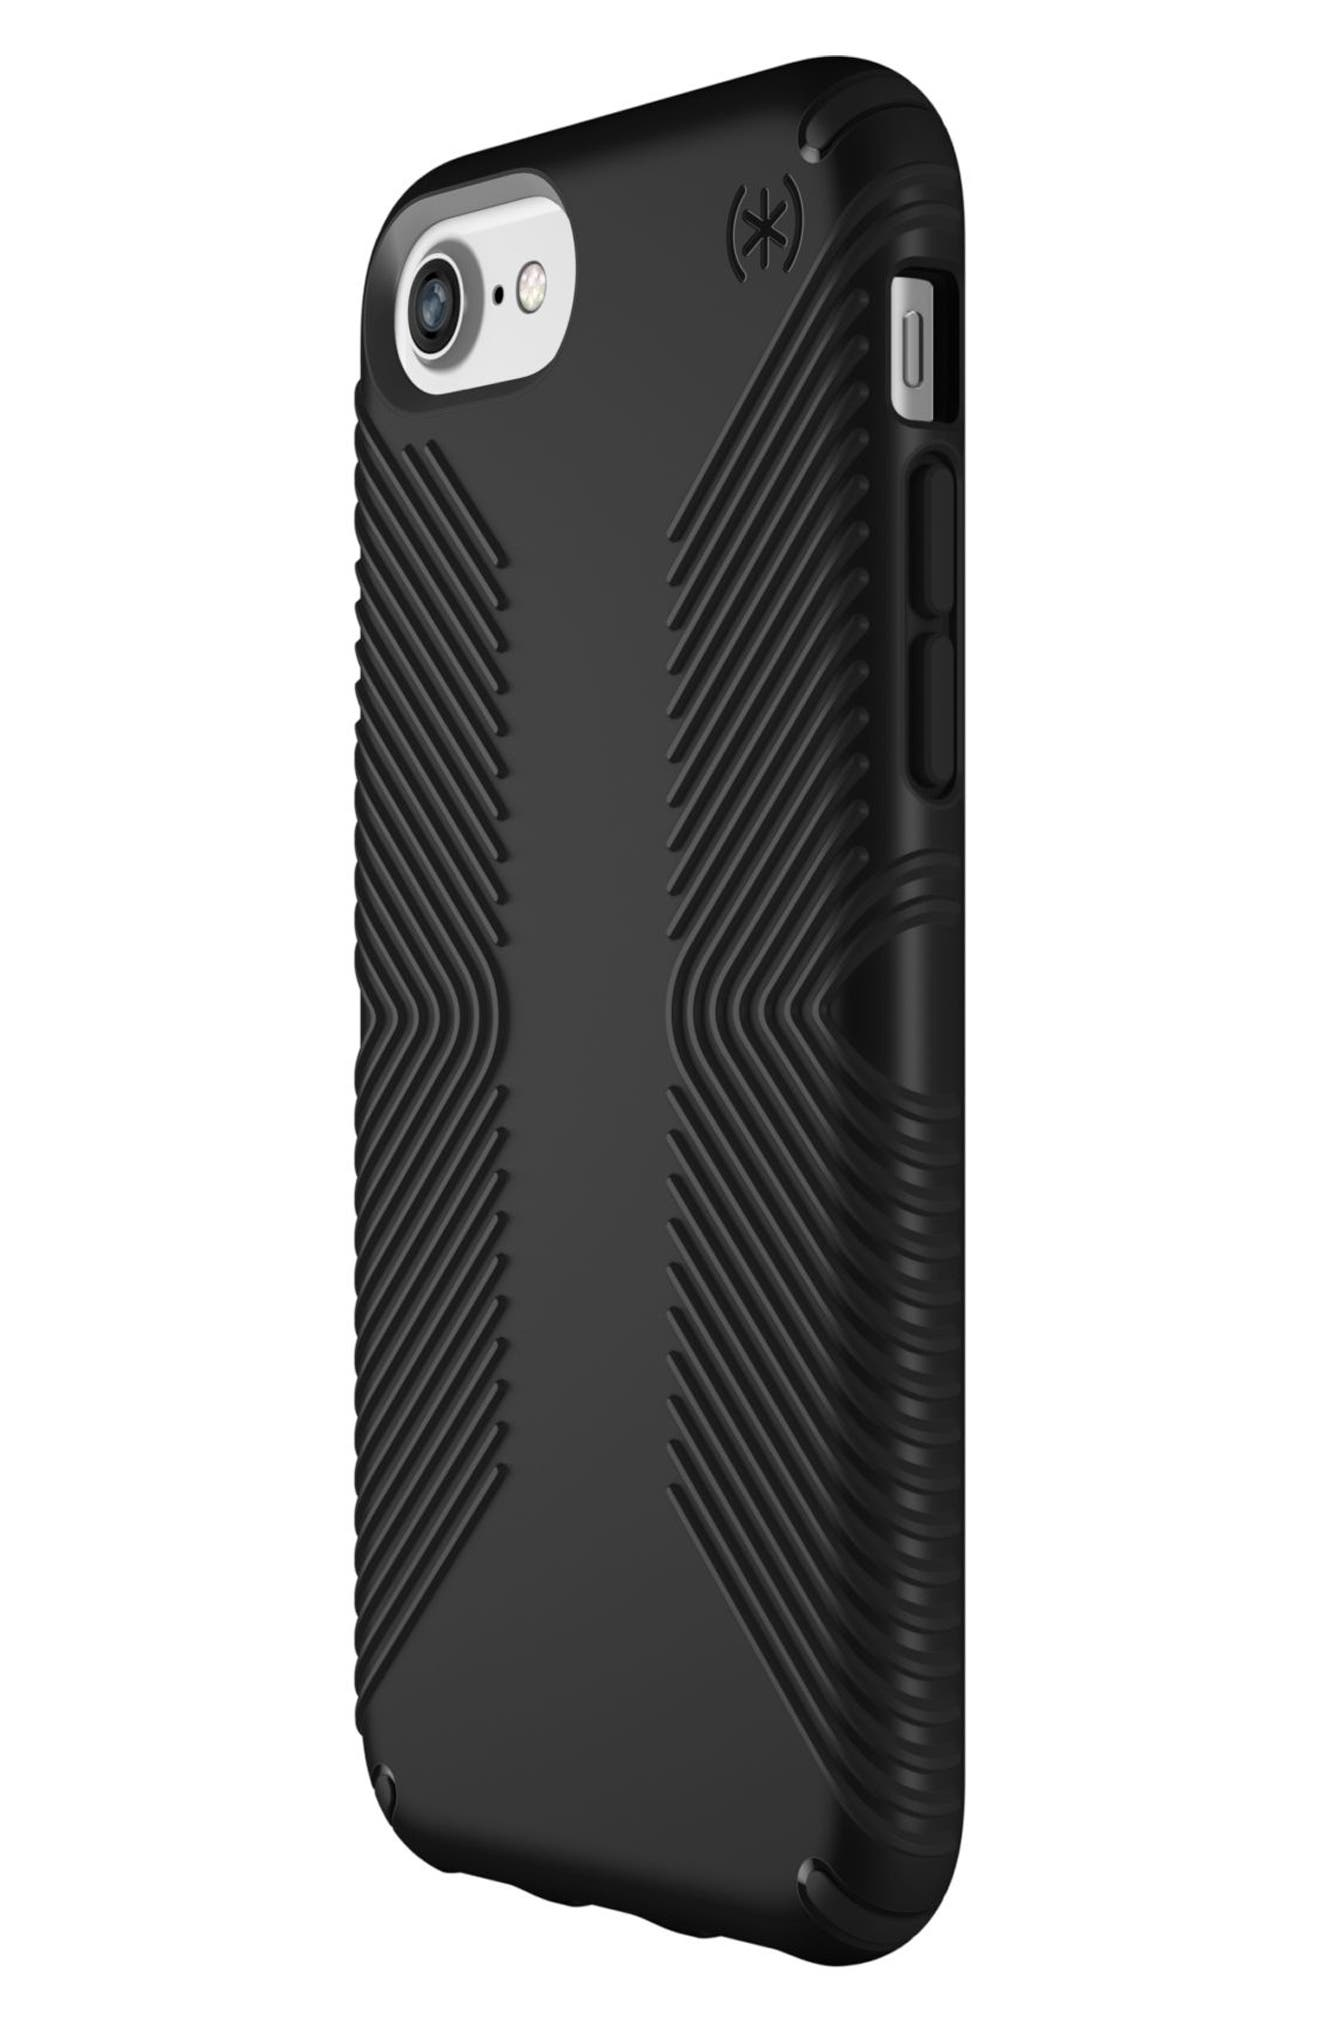 Grip iPhone 6/6s/7/8 Case,                             Alternate thumbnail 3, color,                             Black/ Black